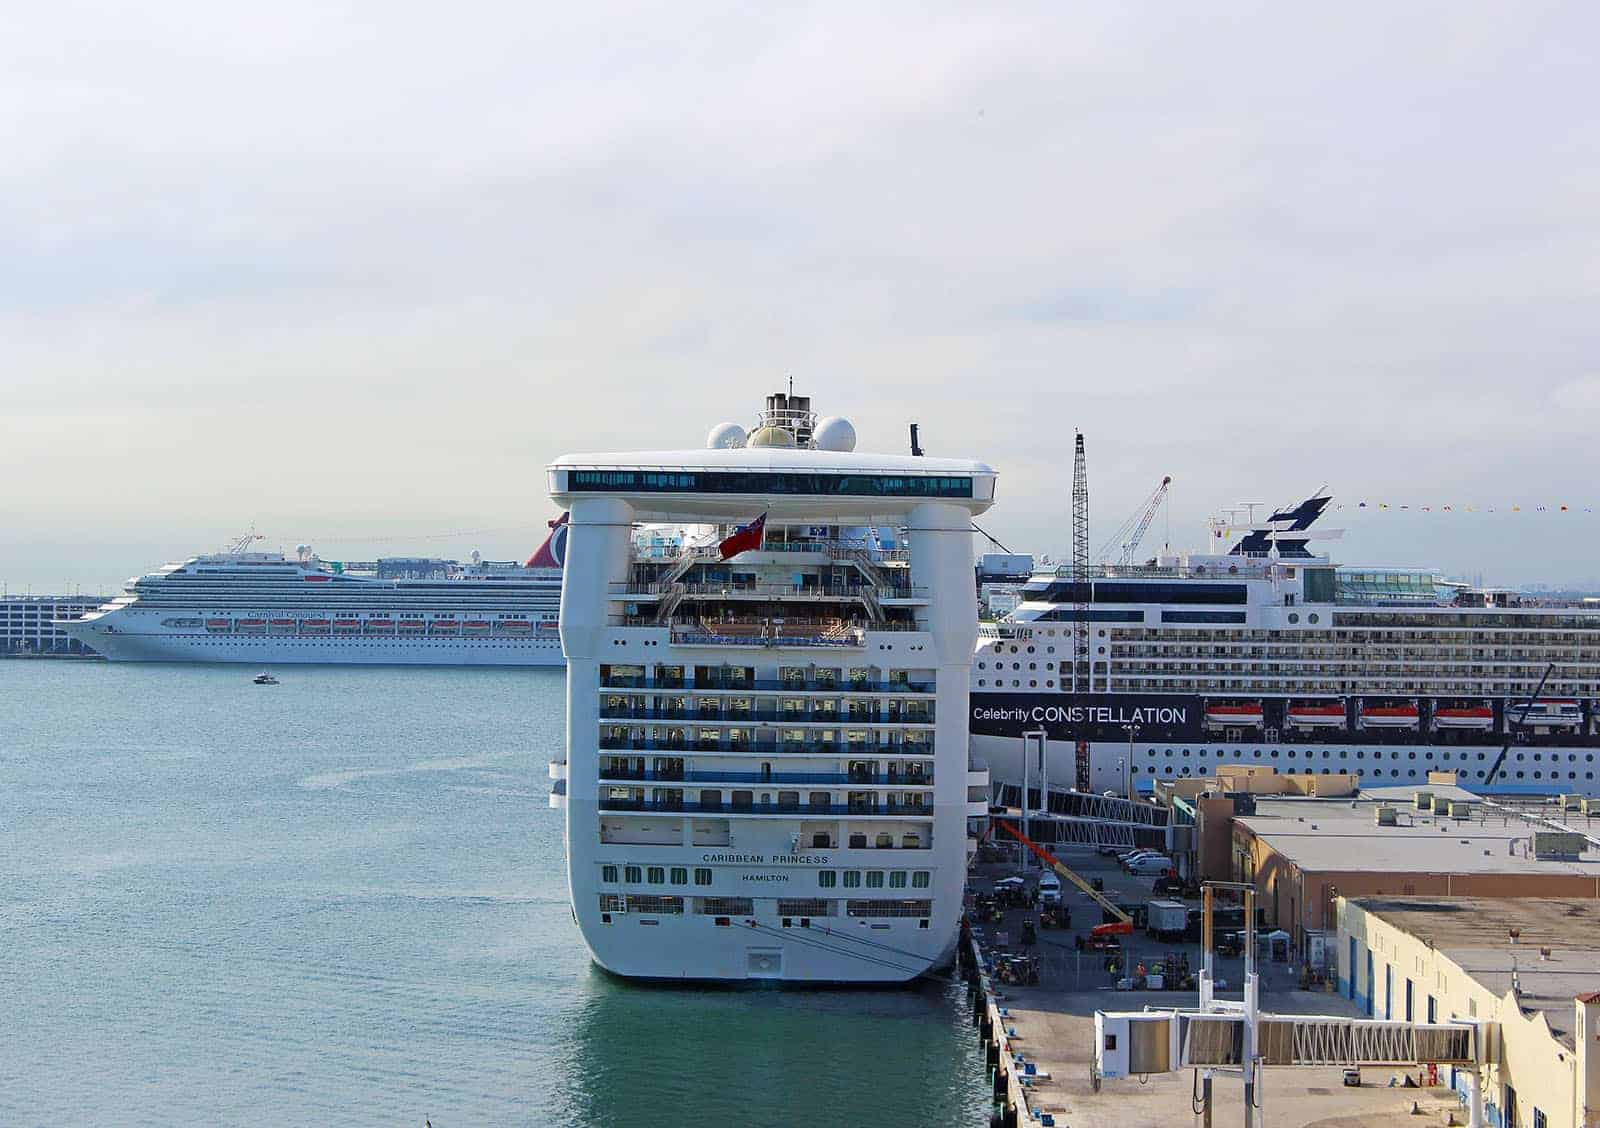 Embarkation Day - The Caribbean Princess